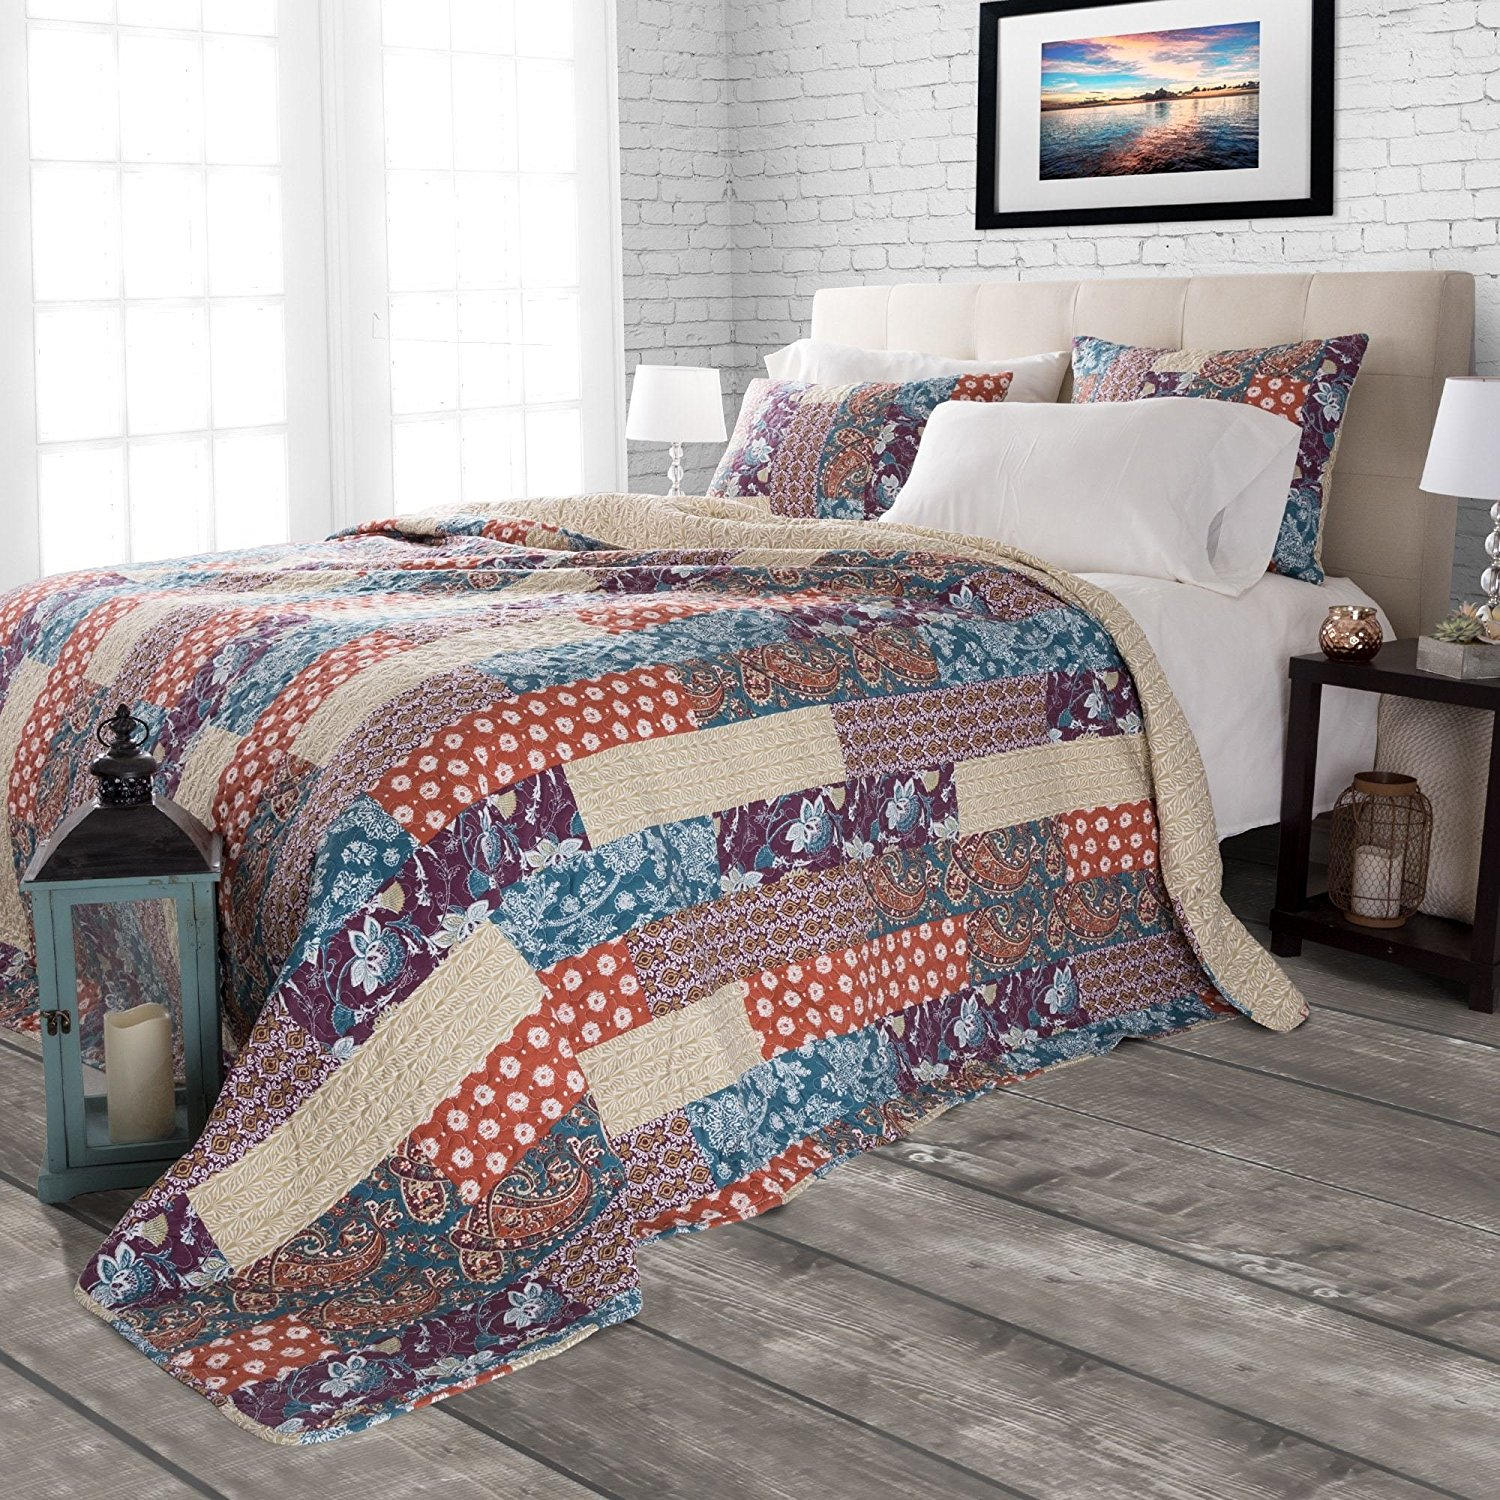 3 Piece Red Plaid Full Queen Quilt Set, Rustic Cabin Lodge Theme Bedding, Patchwork Checkered Lumberjack Stripe Rugby Stripes Damask Madras Tartan Floral Flowers Reversible Diamond, Cotton Polyester